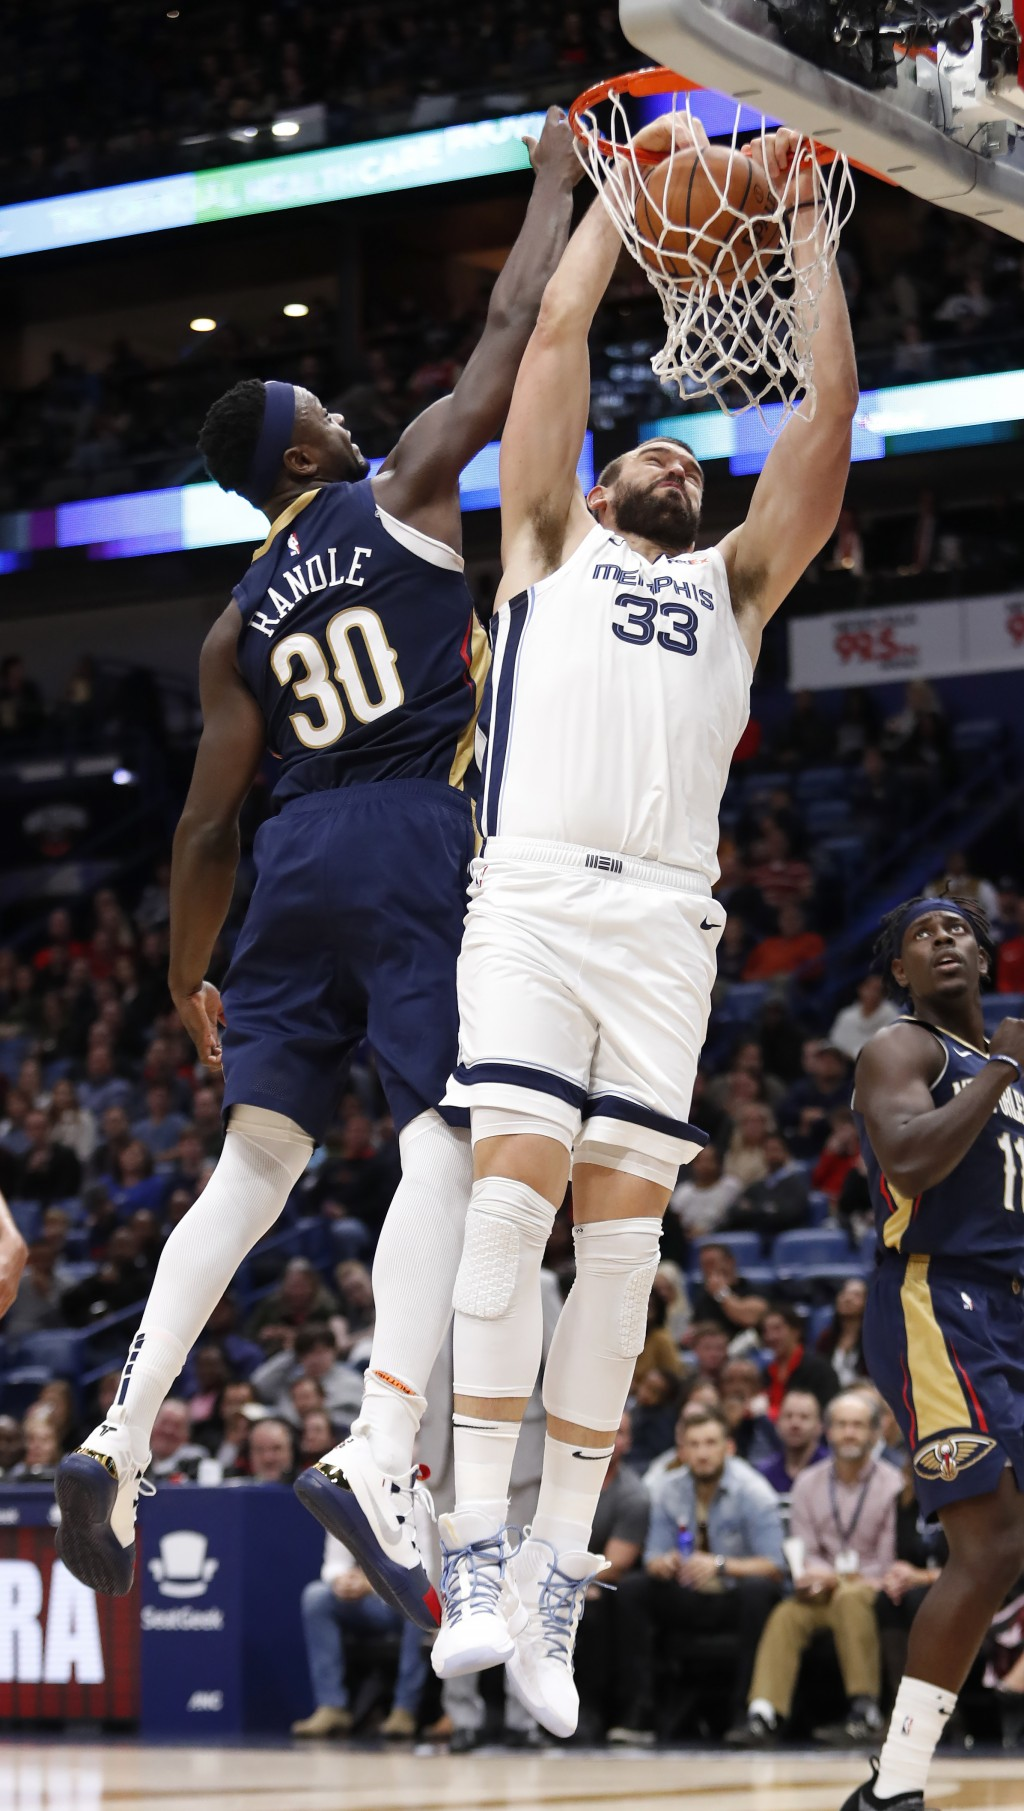 Memphis Grizzlies center Marc Gasol (33) dunks the ball over New Orleans Pelicans forward Julius Randle (30) in the first half of an NBA basketball ga